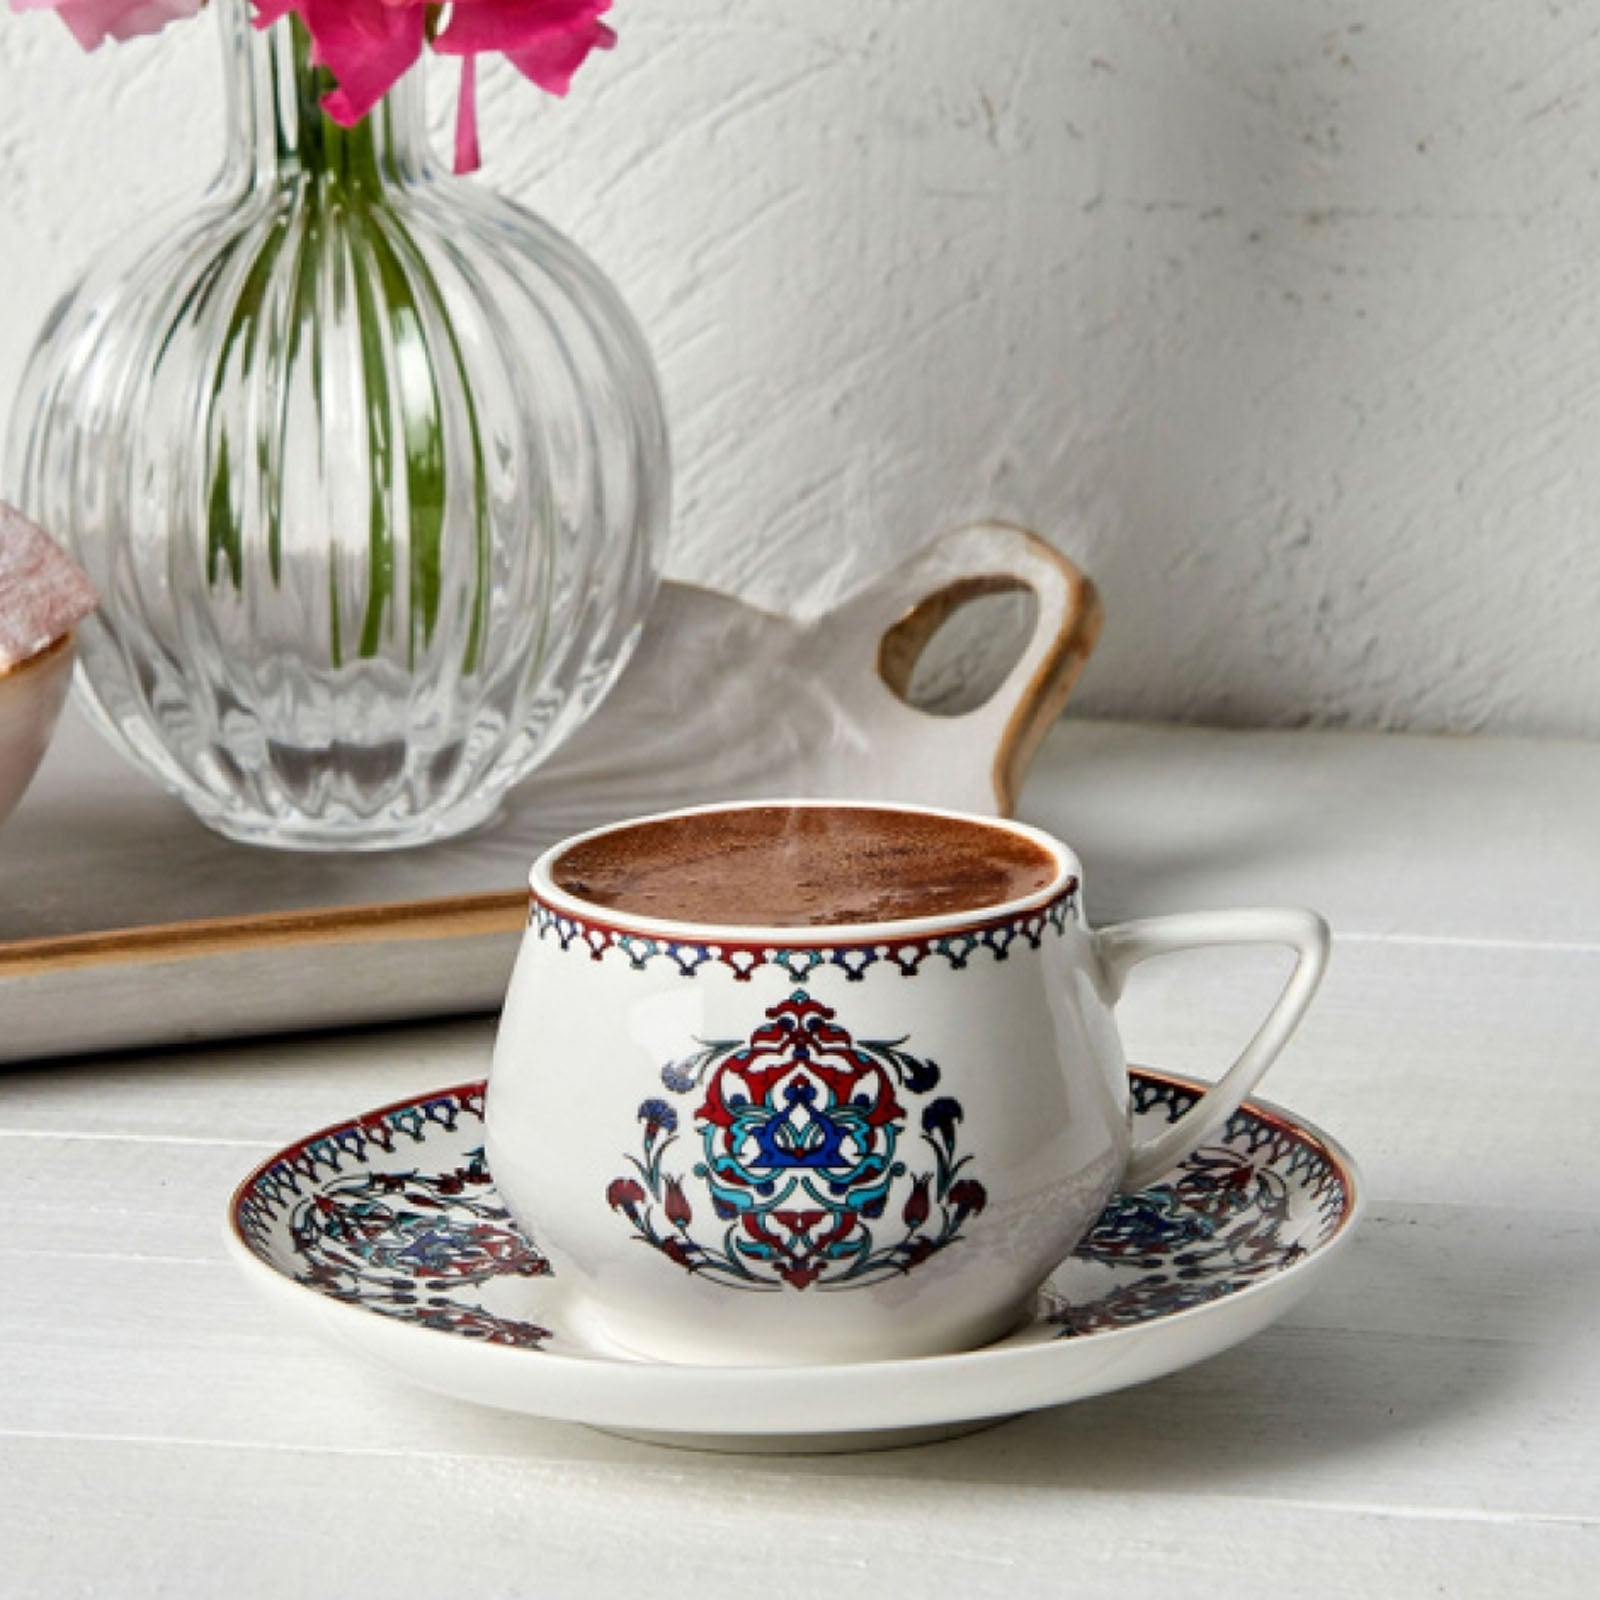 Nakkaş Set of 6 Coffee Cups 153.03.07.1749 -  طقم 6 فناجين قهوة نقّاش - Shop Online Furniture and Home Decor Store in Dubai, UAE at ebarza